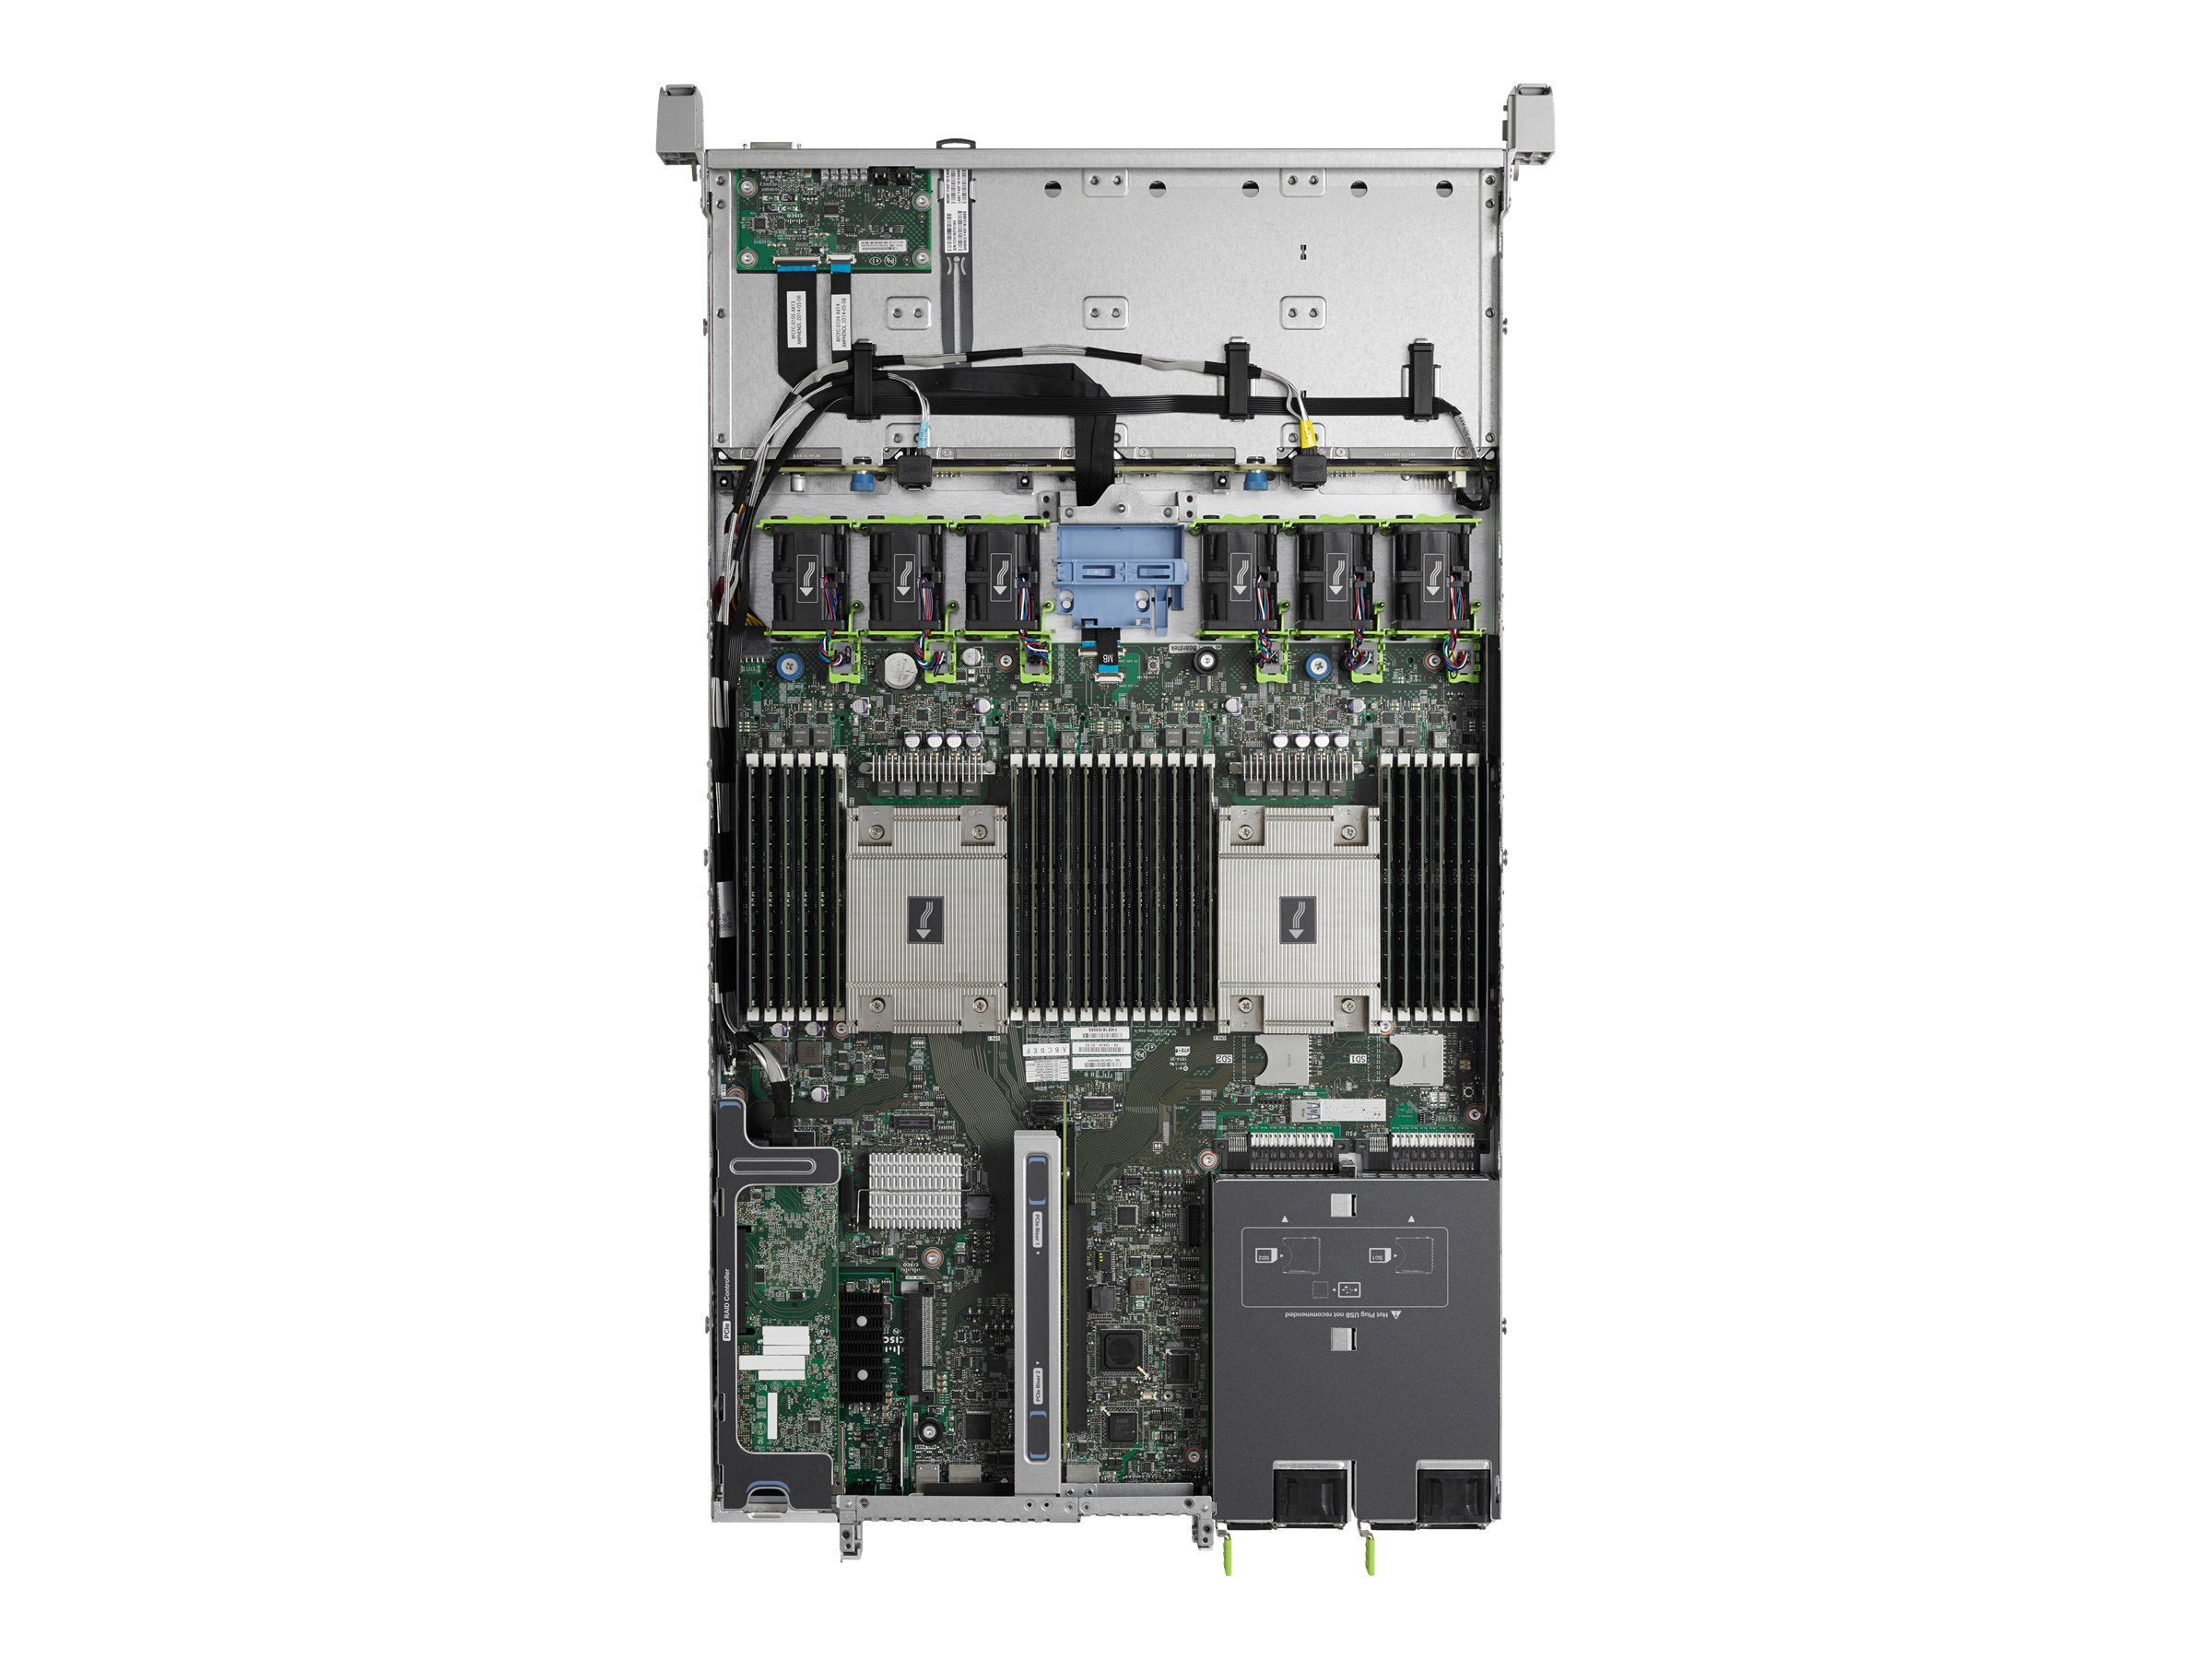 Cisco UCS Smart Play Select C220 M4S Standard 1 (2x)Xeon E5-2630 v3 64GB VIC1227, UCS-SPL-C220M4-S1